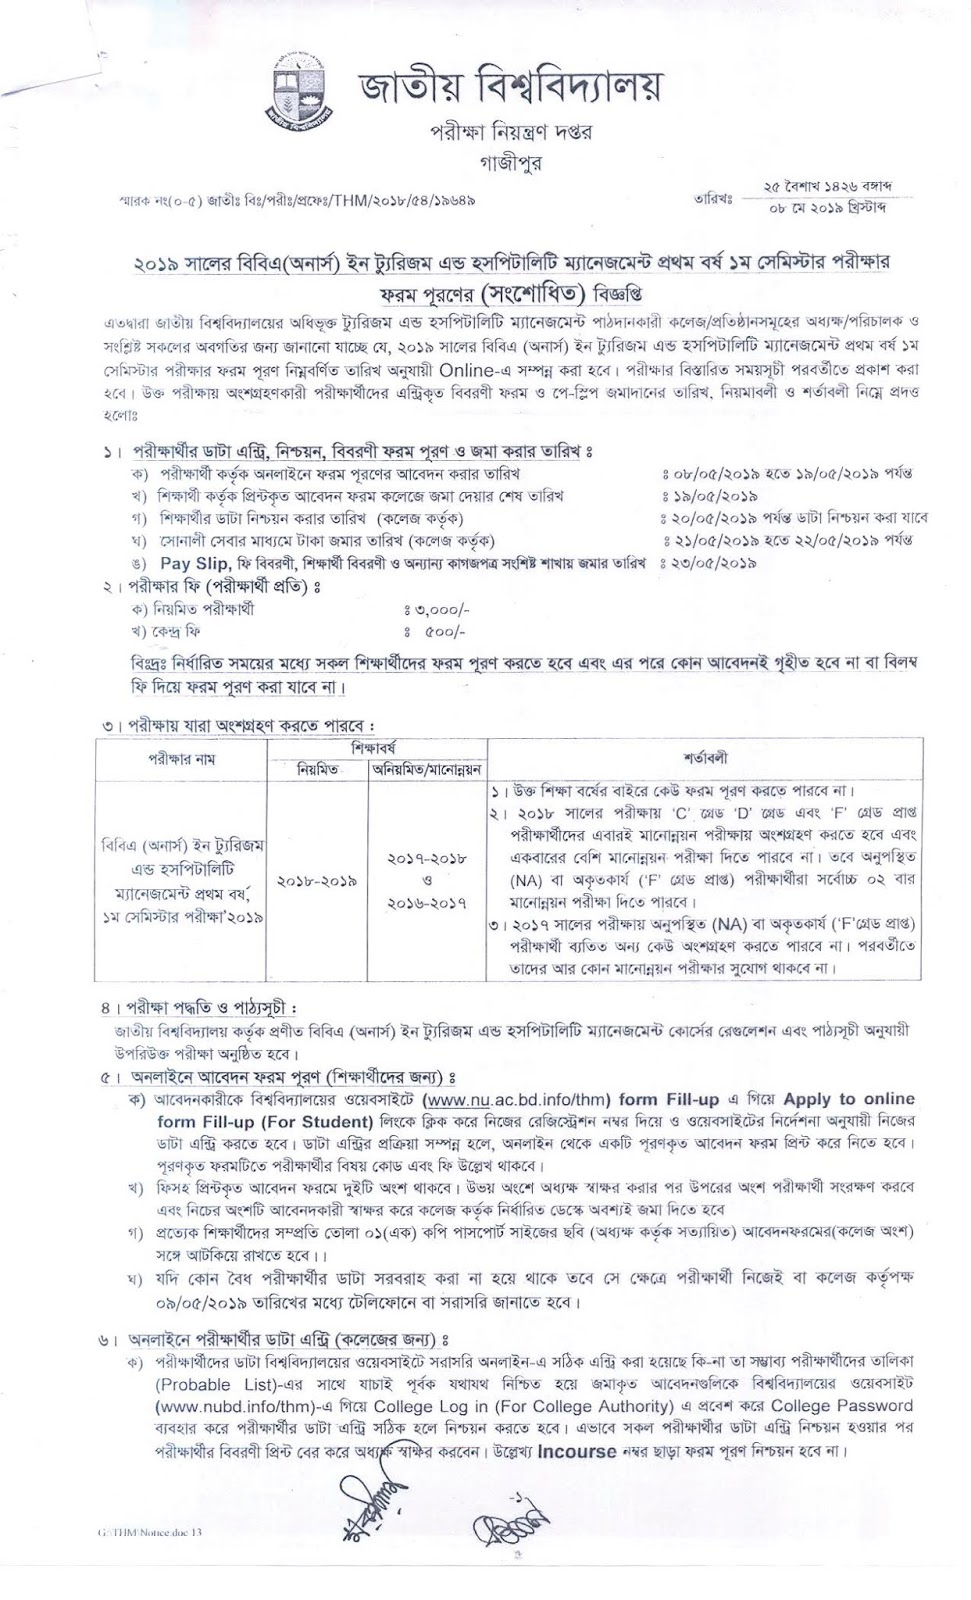 Nu 1st BBA (Hons) In-Tourism and Hospitality Management Form Fill-up Notice